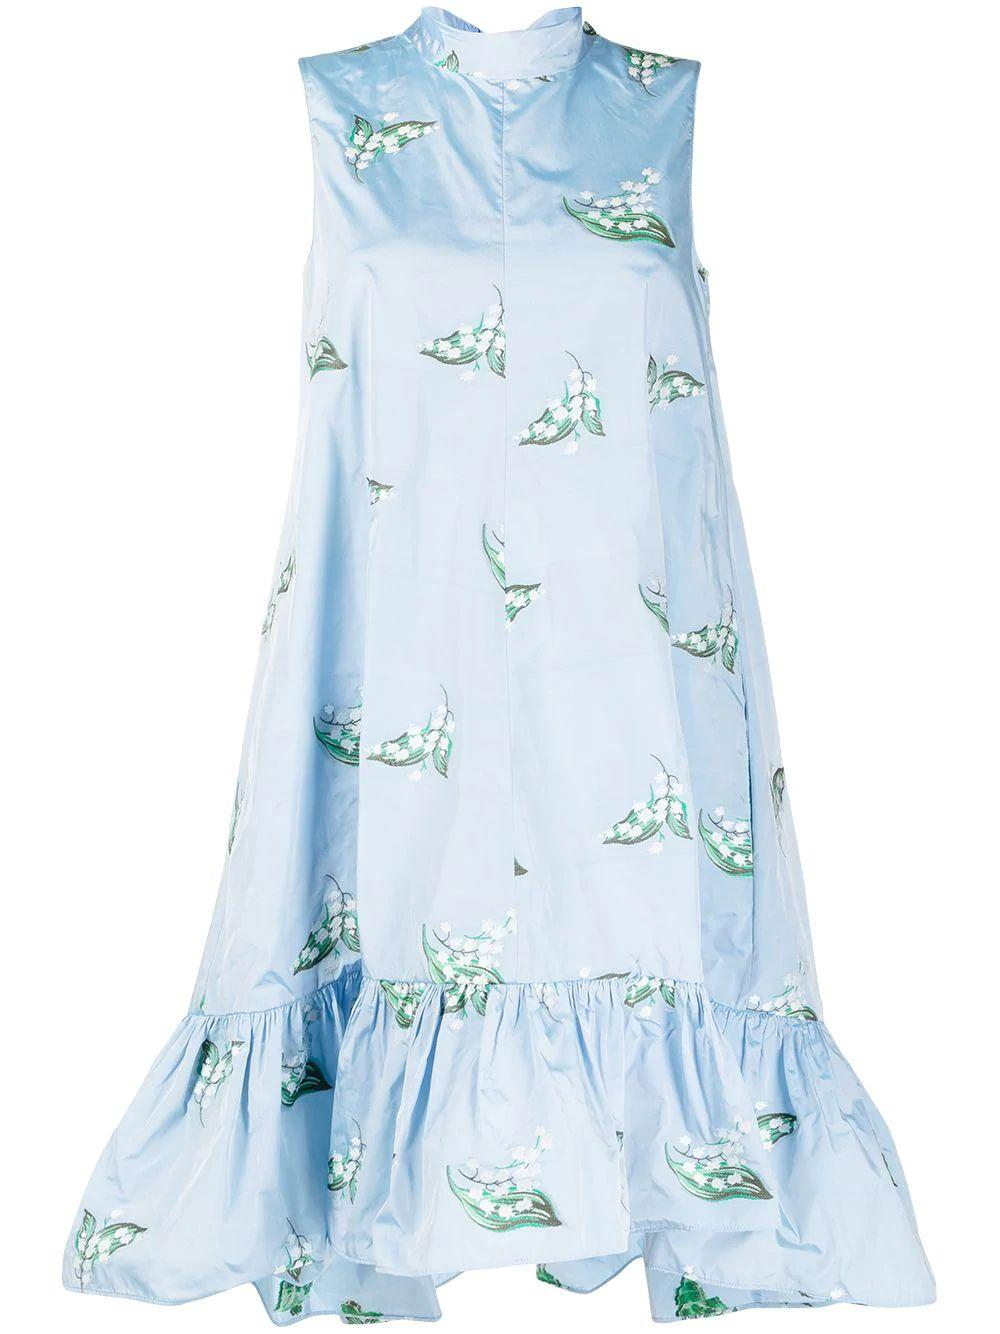 May Lily-Motif Day Dress